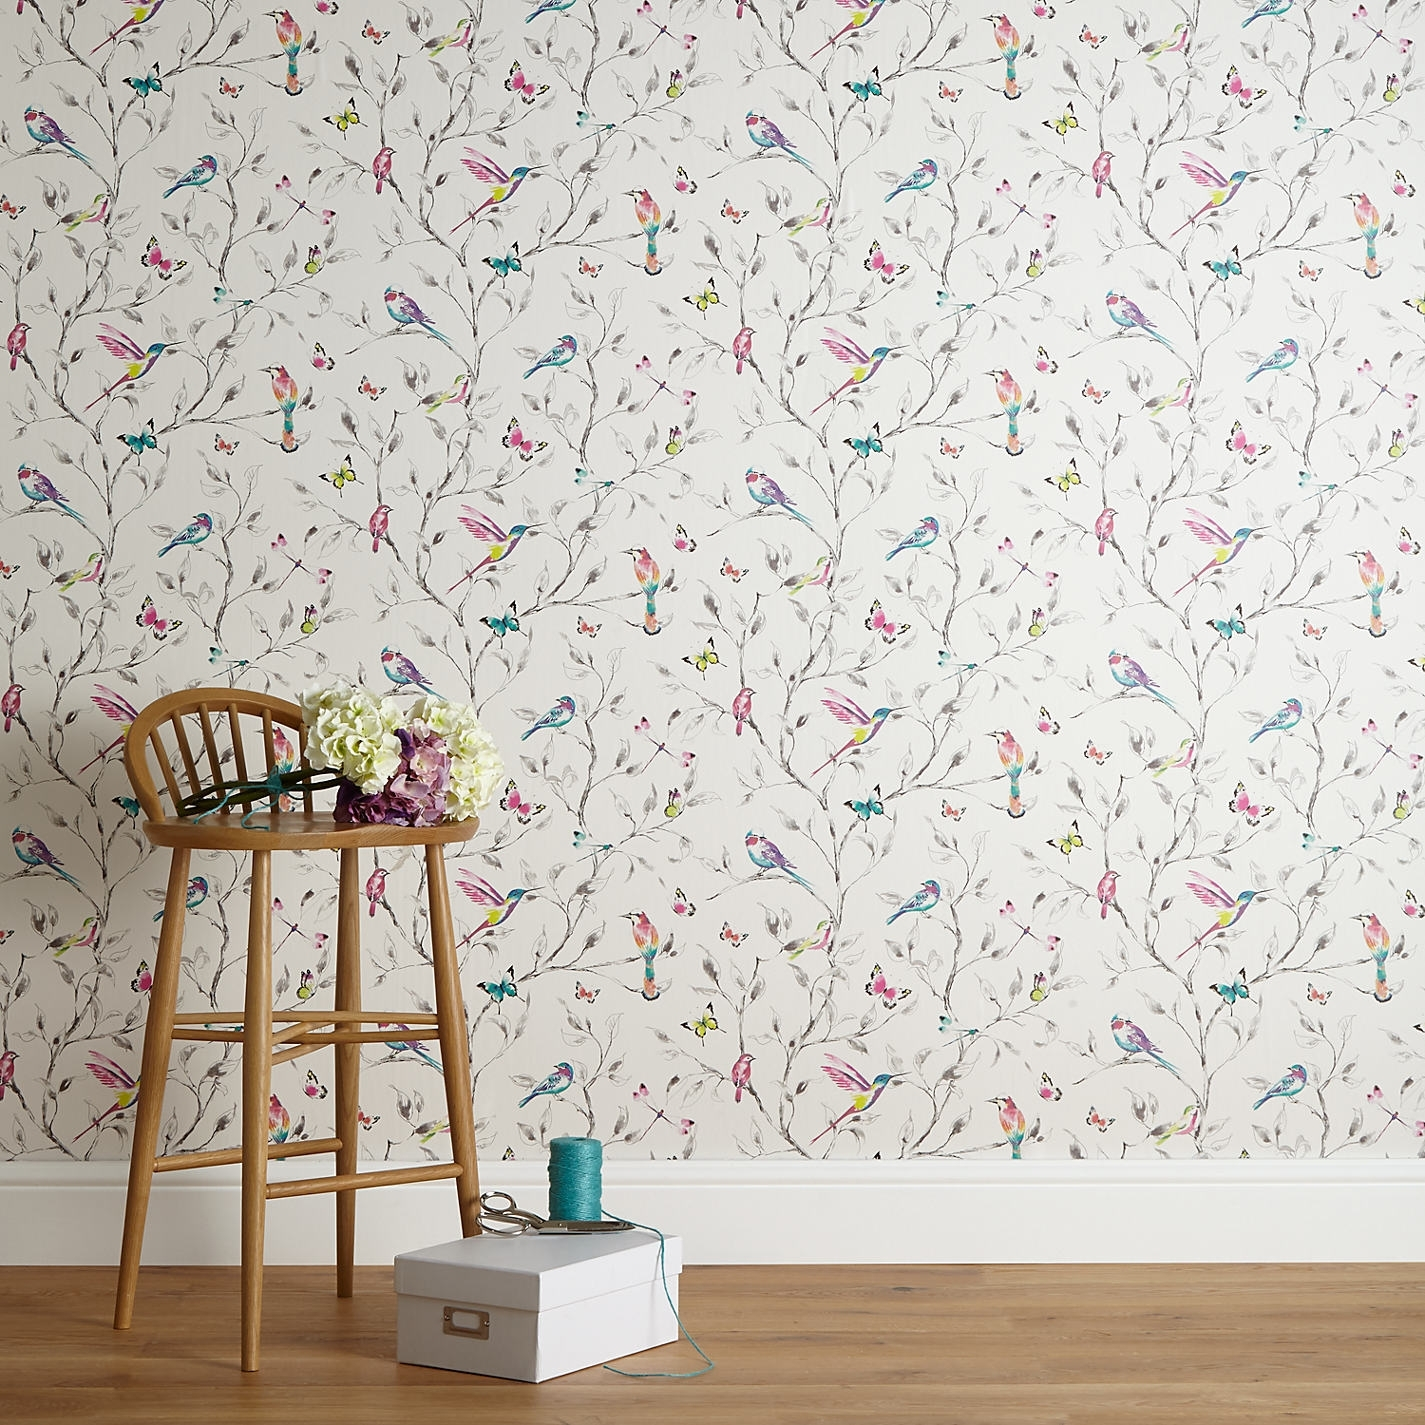 John Lewis Wallpapers – Lyhyxx For Newest John Lewis Abstract Wall Art (View 11 of 20)